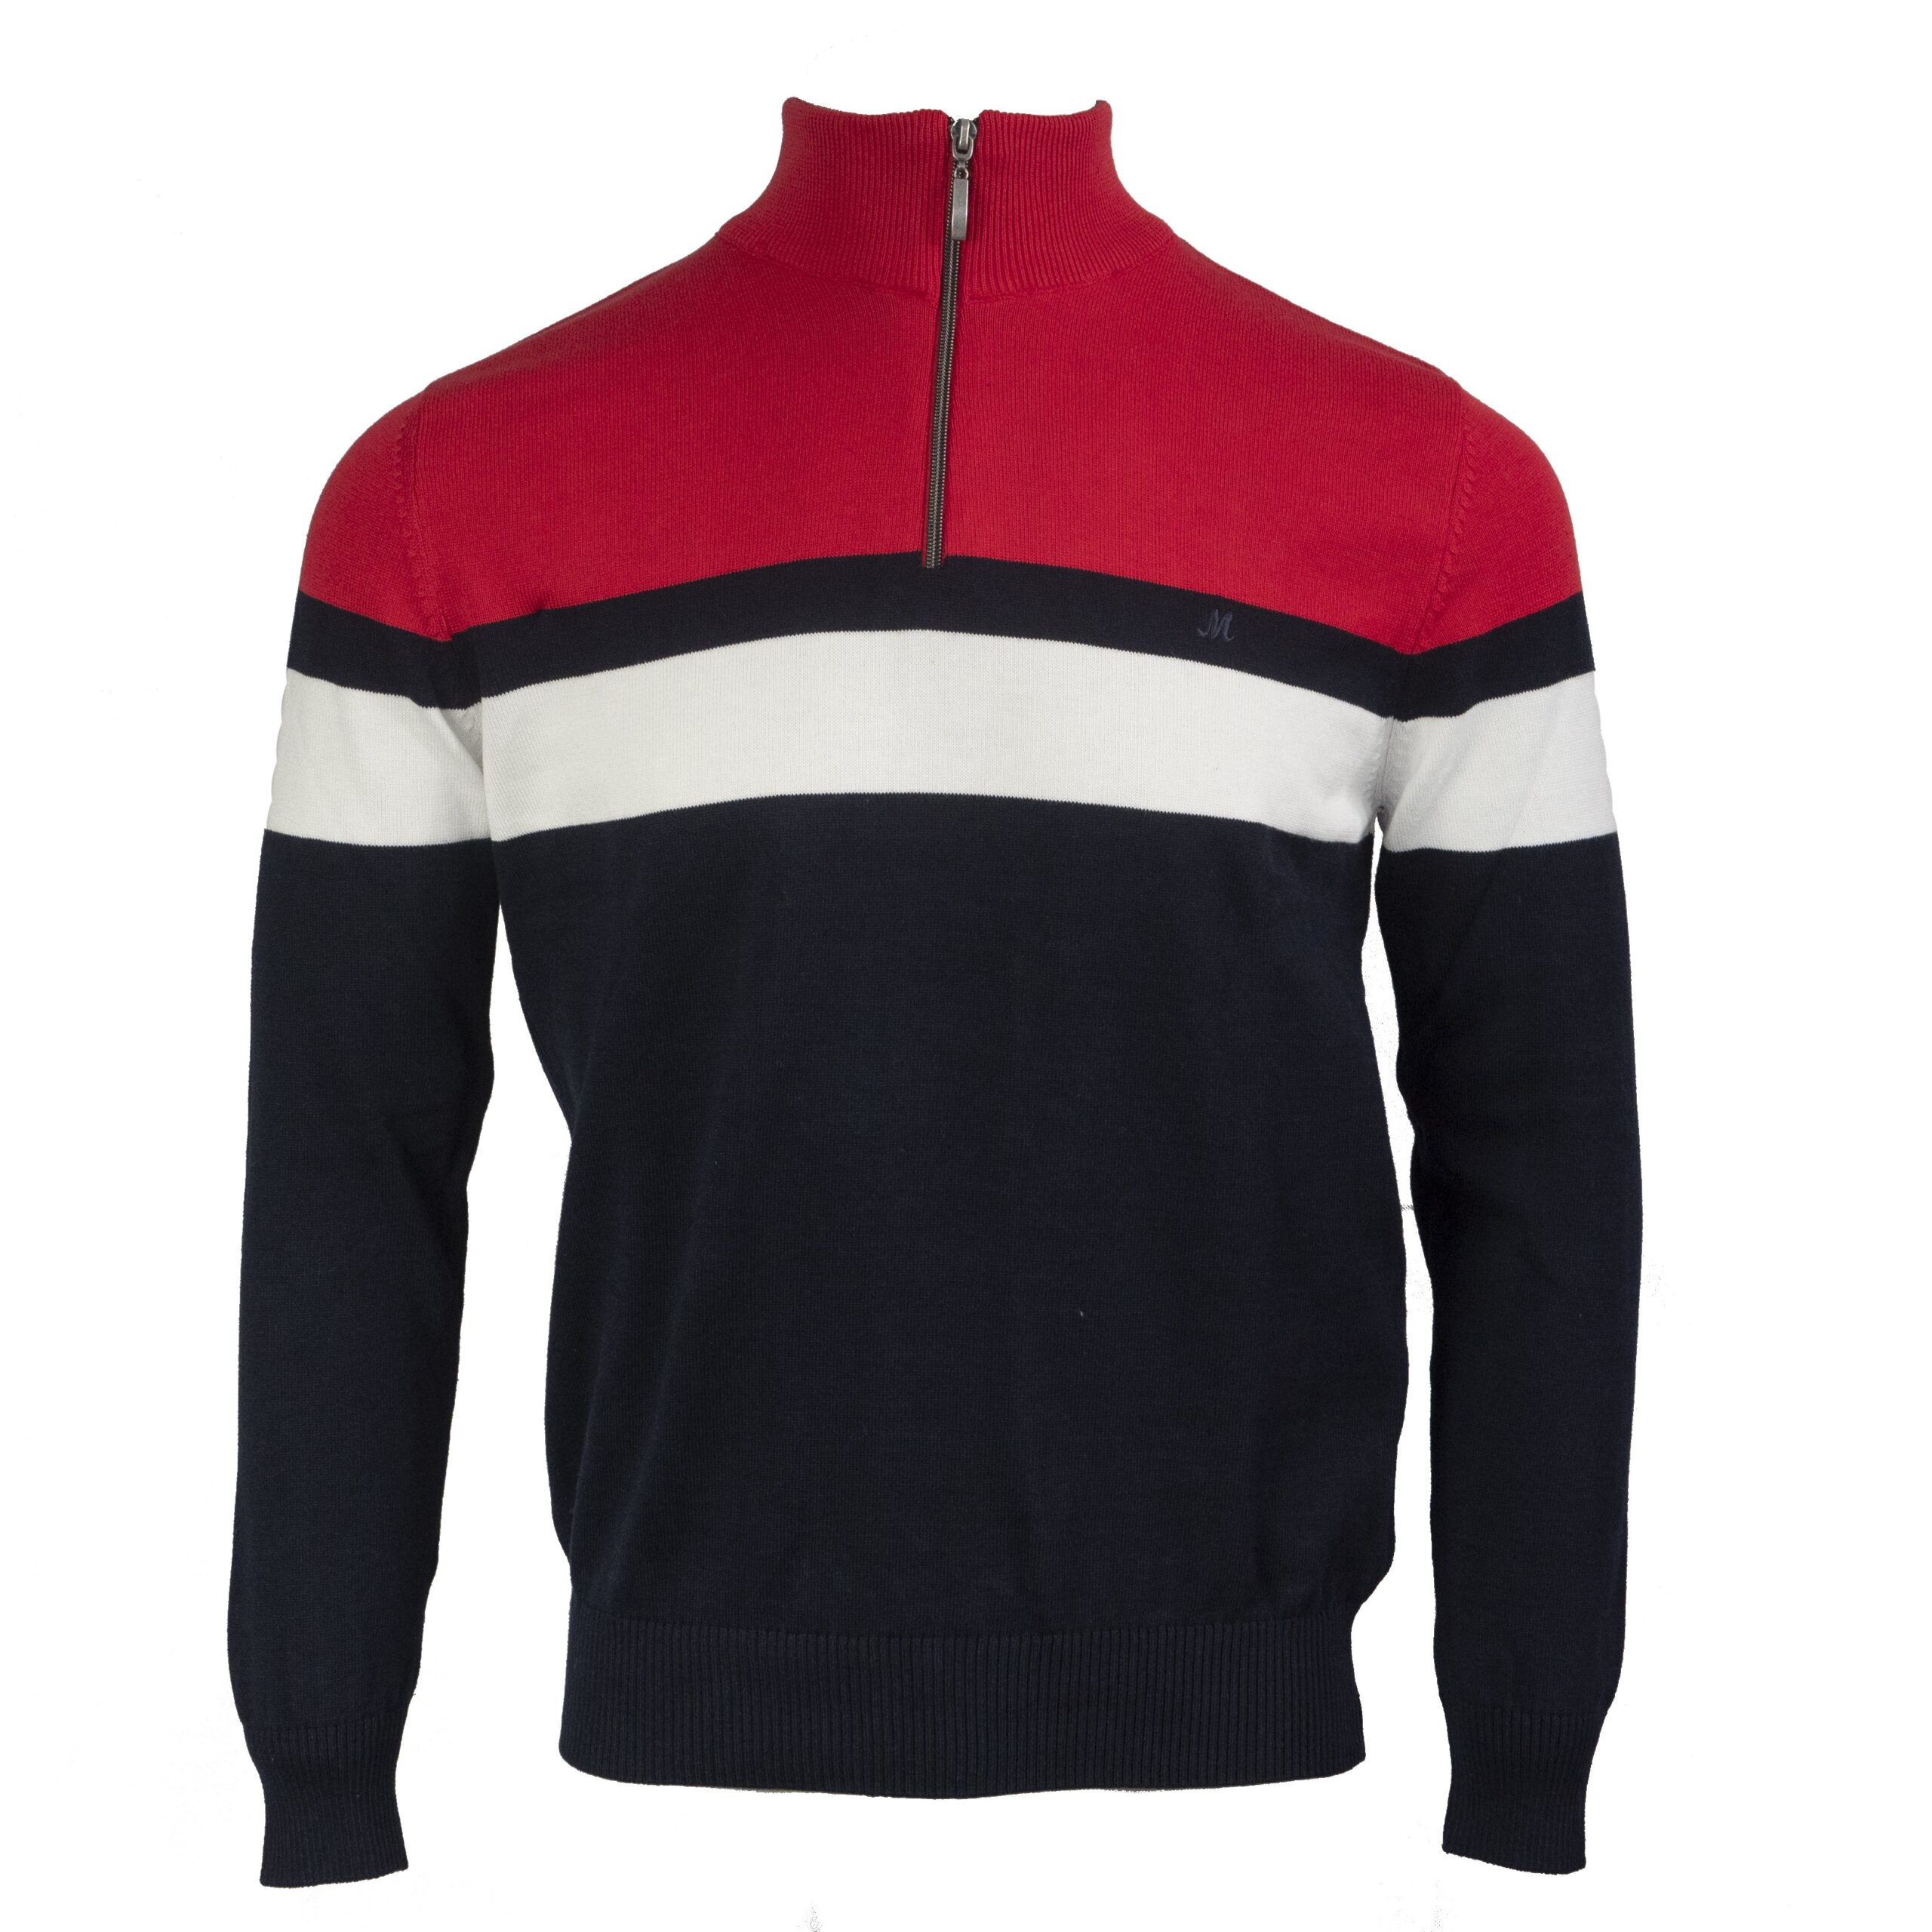 SOFIA RED 100% COTTON 1/4 ZIP KNITWEAR